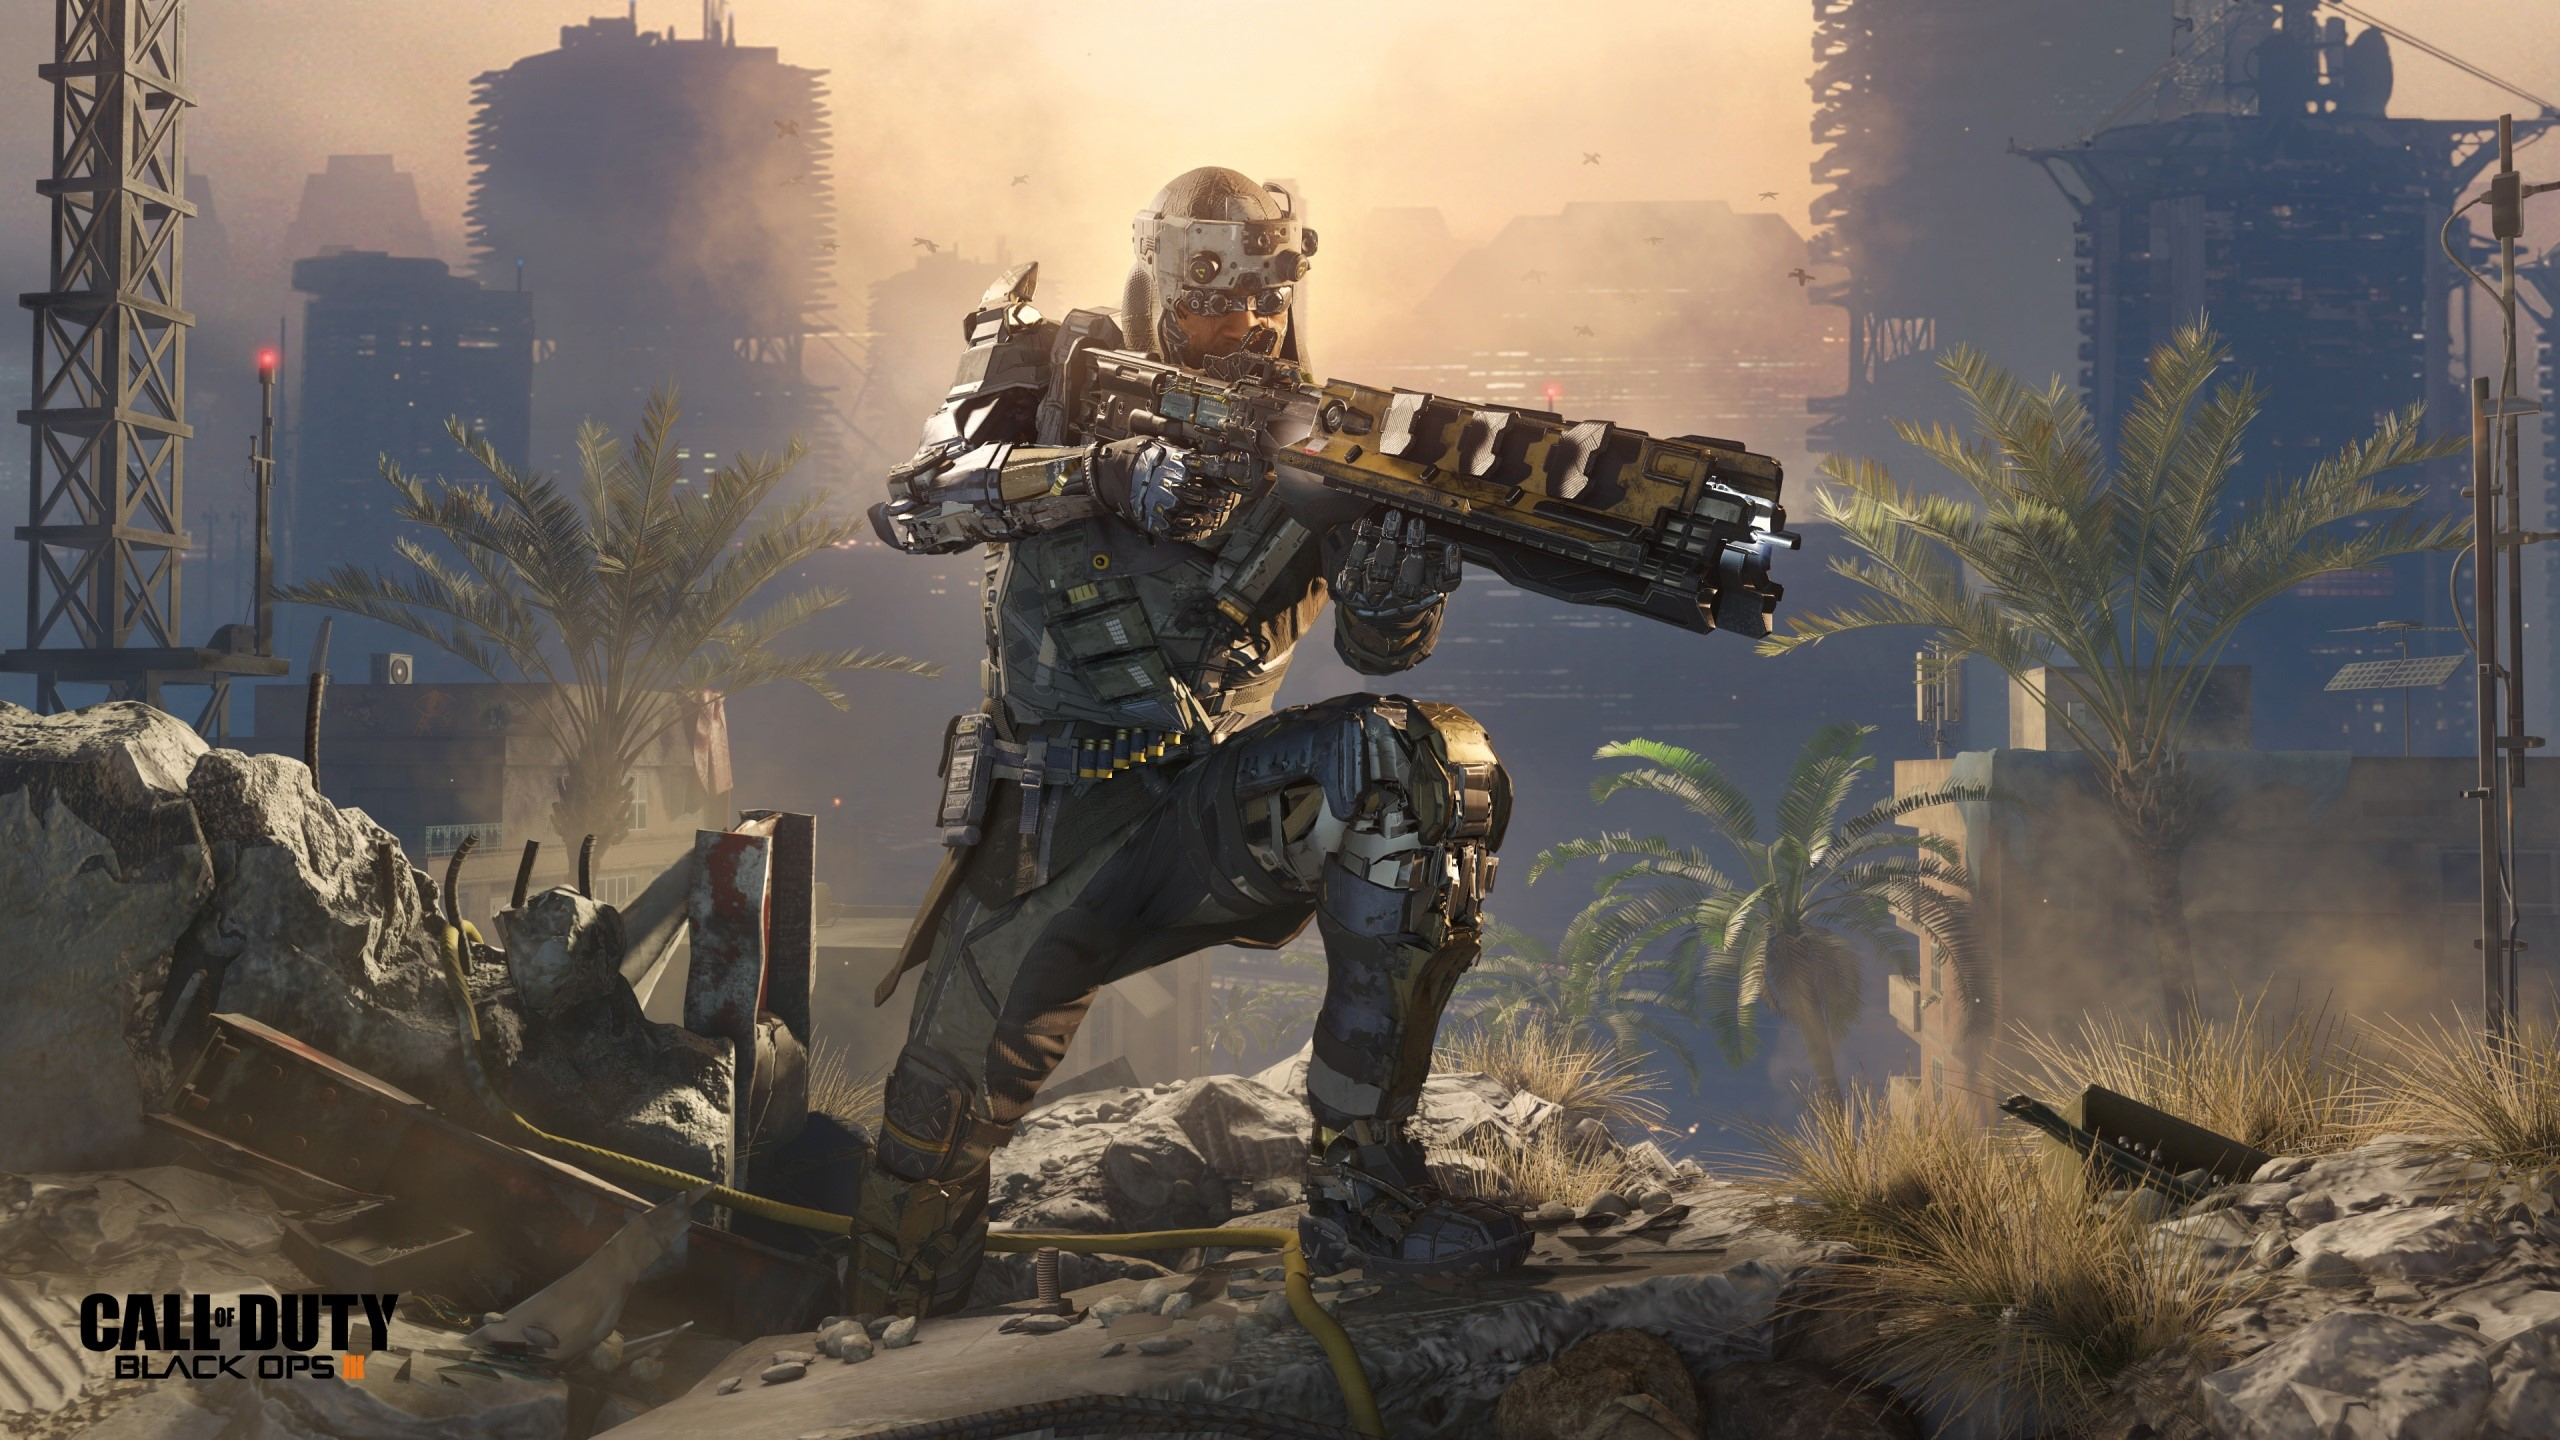 Wallpaper Specialist Prophet by Call of Duty Black Ops 3